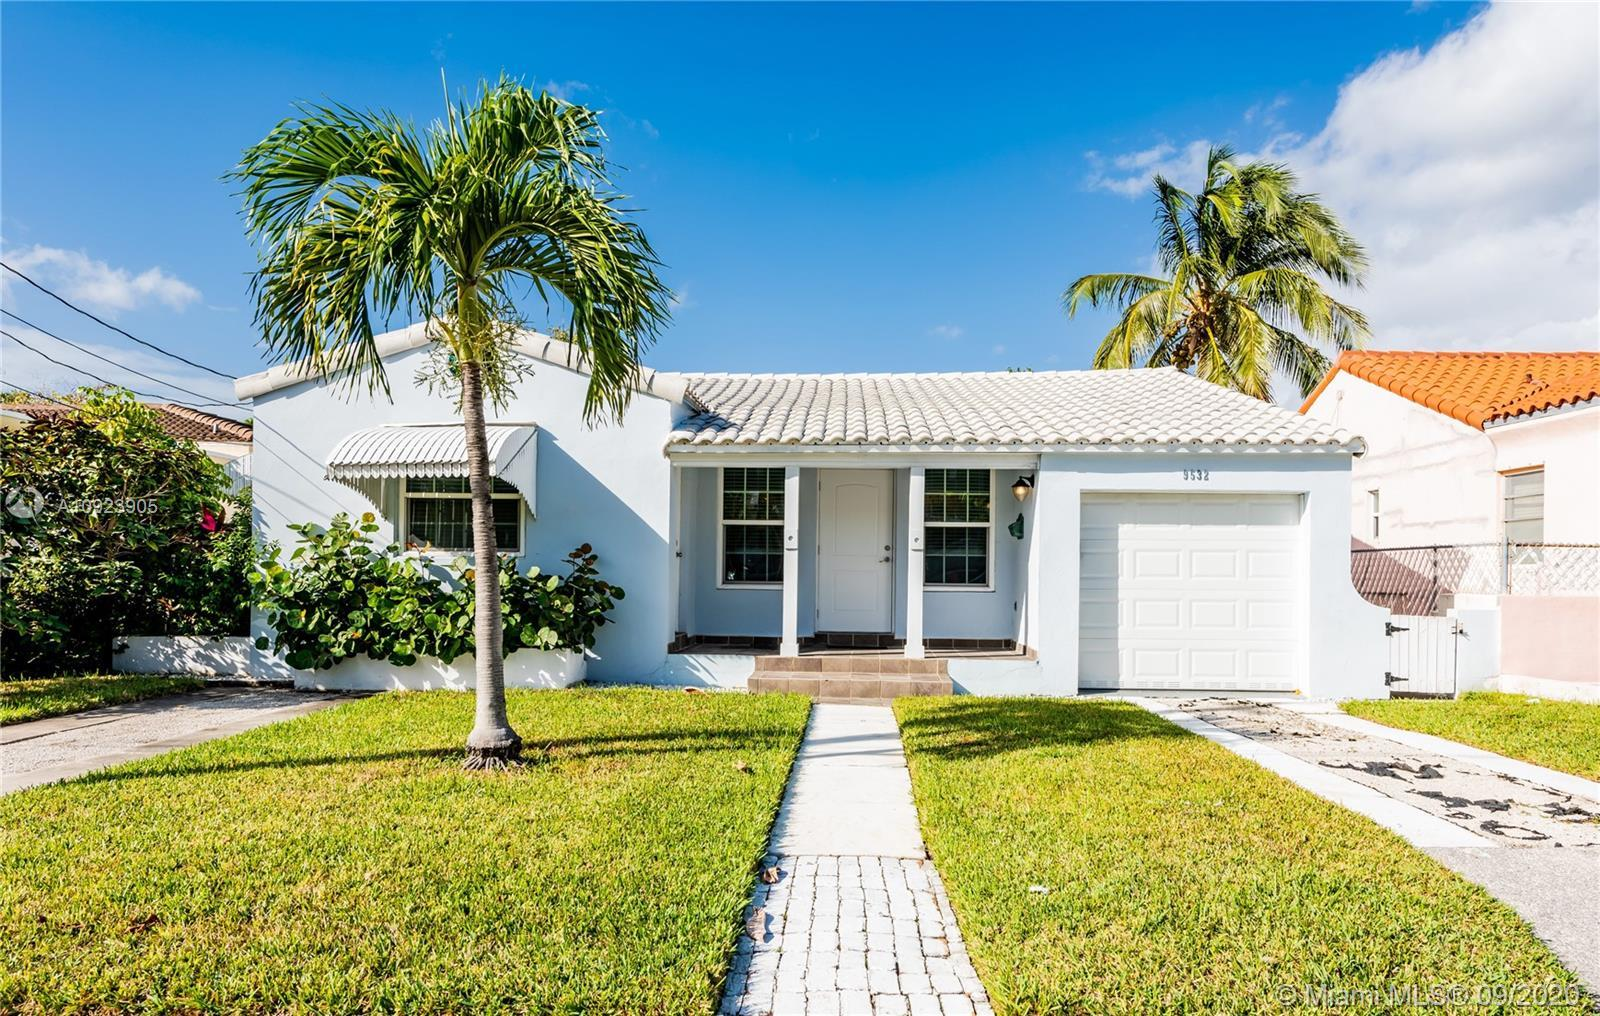 Totally remodeled home, plumbing, electricity, floors, bathrooms....Charming 3/2 with a one car gara